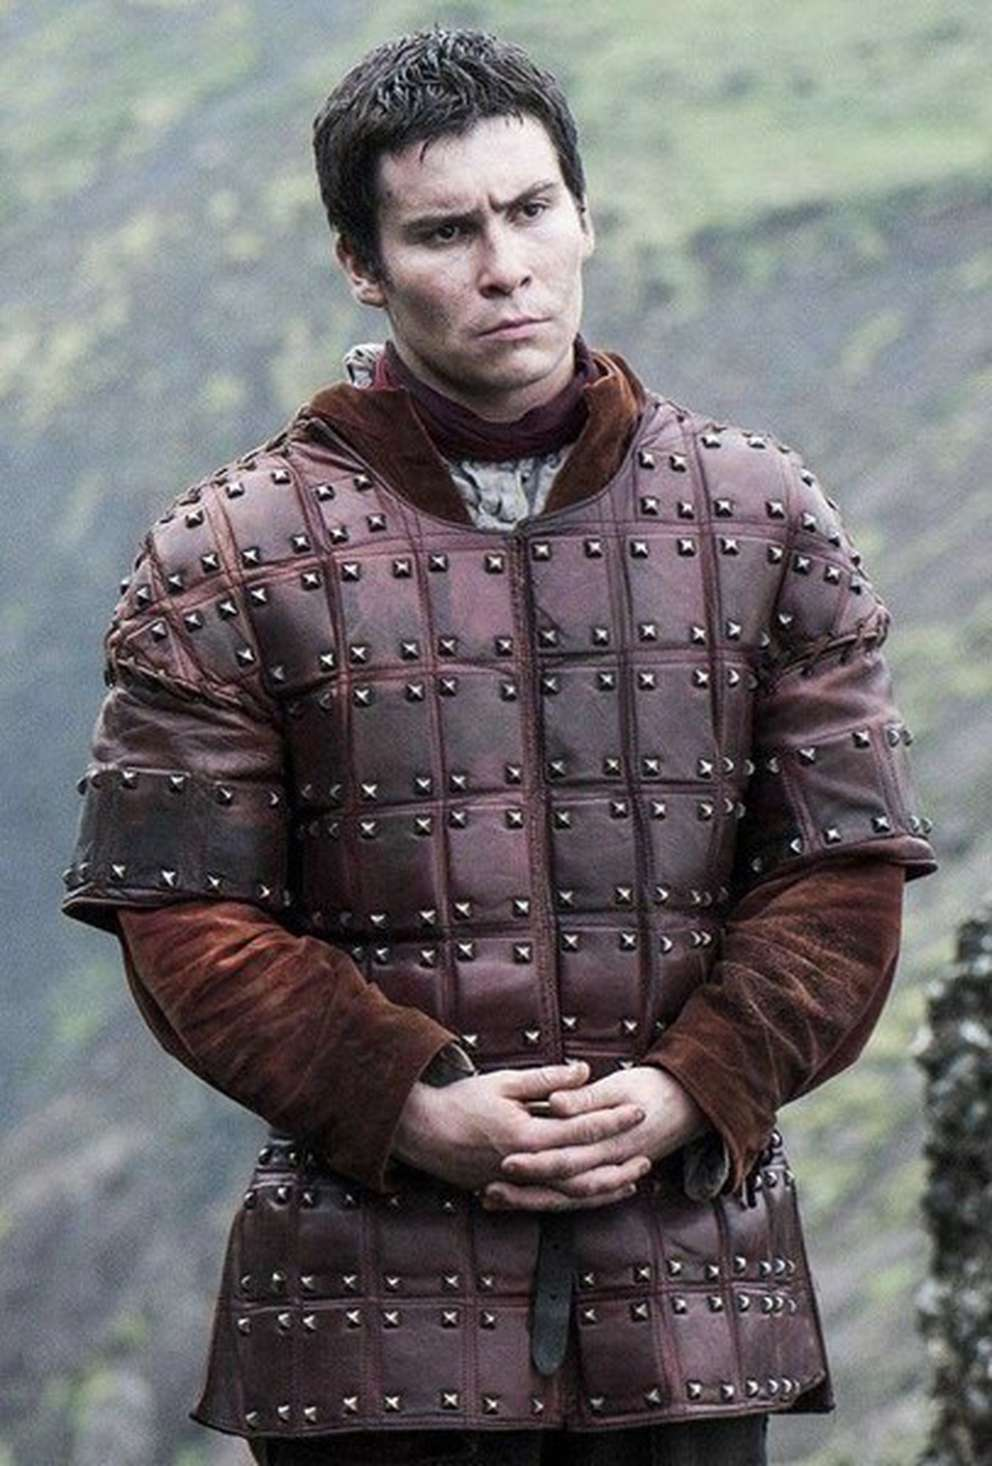 Daniel Portman as Podrick Payne. [HBO]